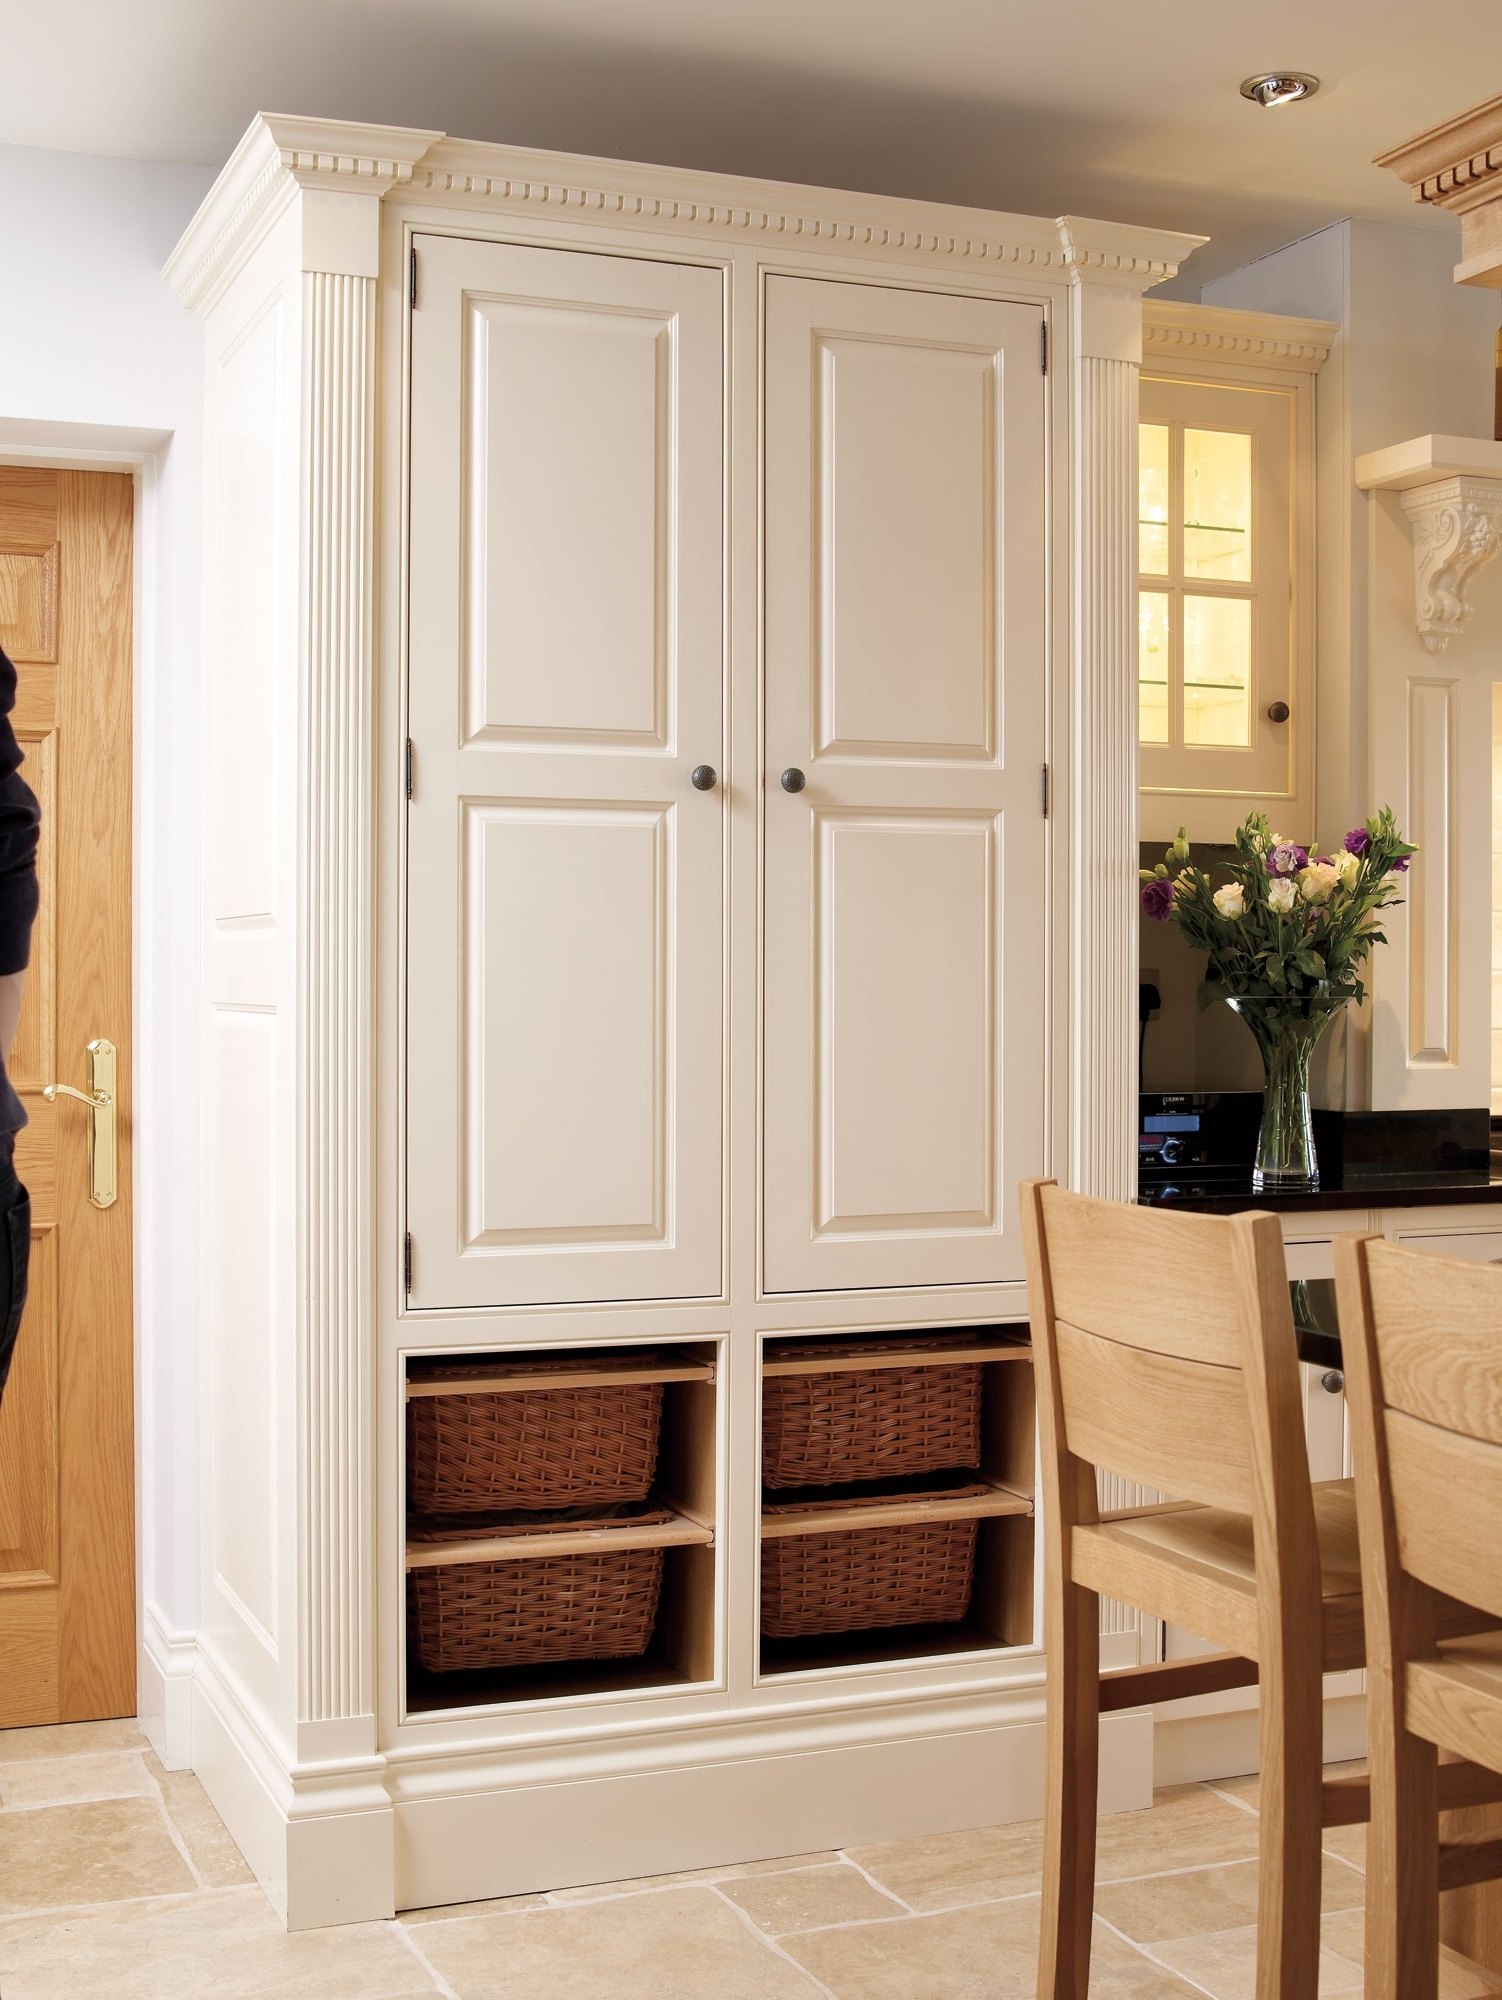 Bespoke Built In Furniture Pertaining To Fashionable Fitted Kitchen Larder – The Bespoke Furniture Company (View 4 of 15)